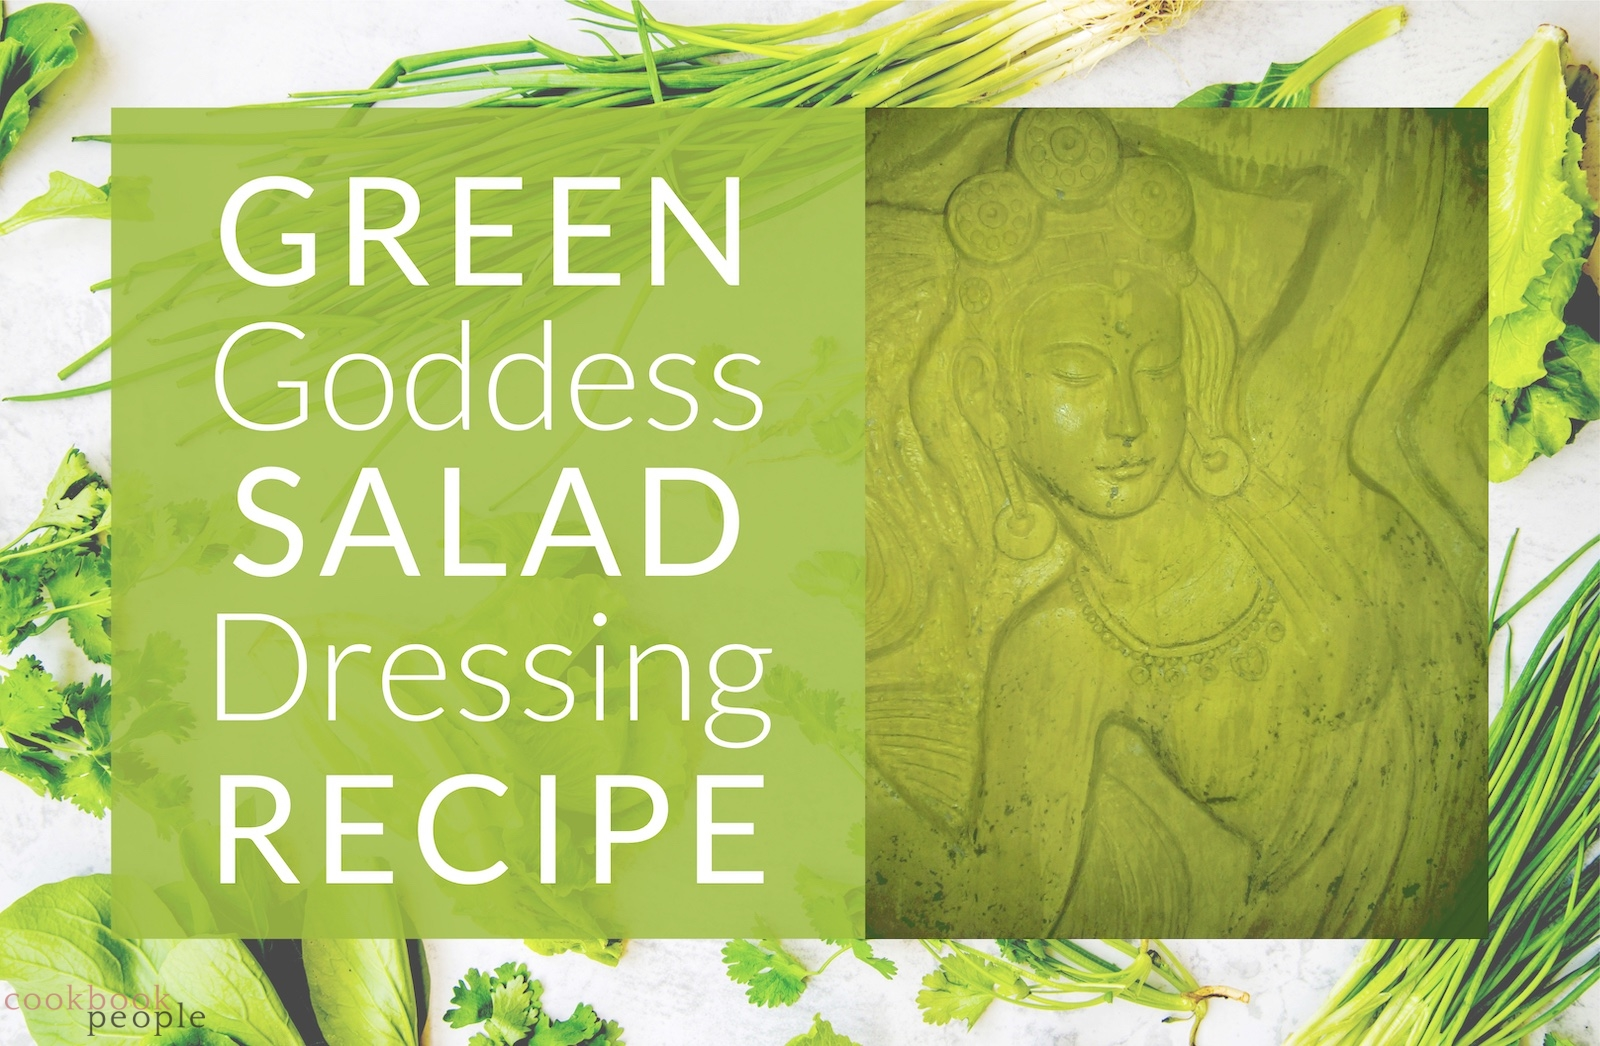 salad ingredients on white background superimposed with green image of hindu goddess and title: Green Goddess Salad Dressing Recipe